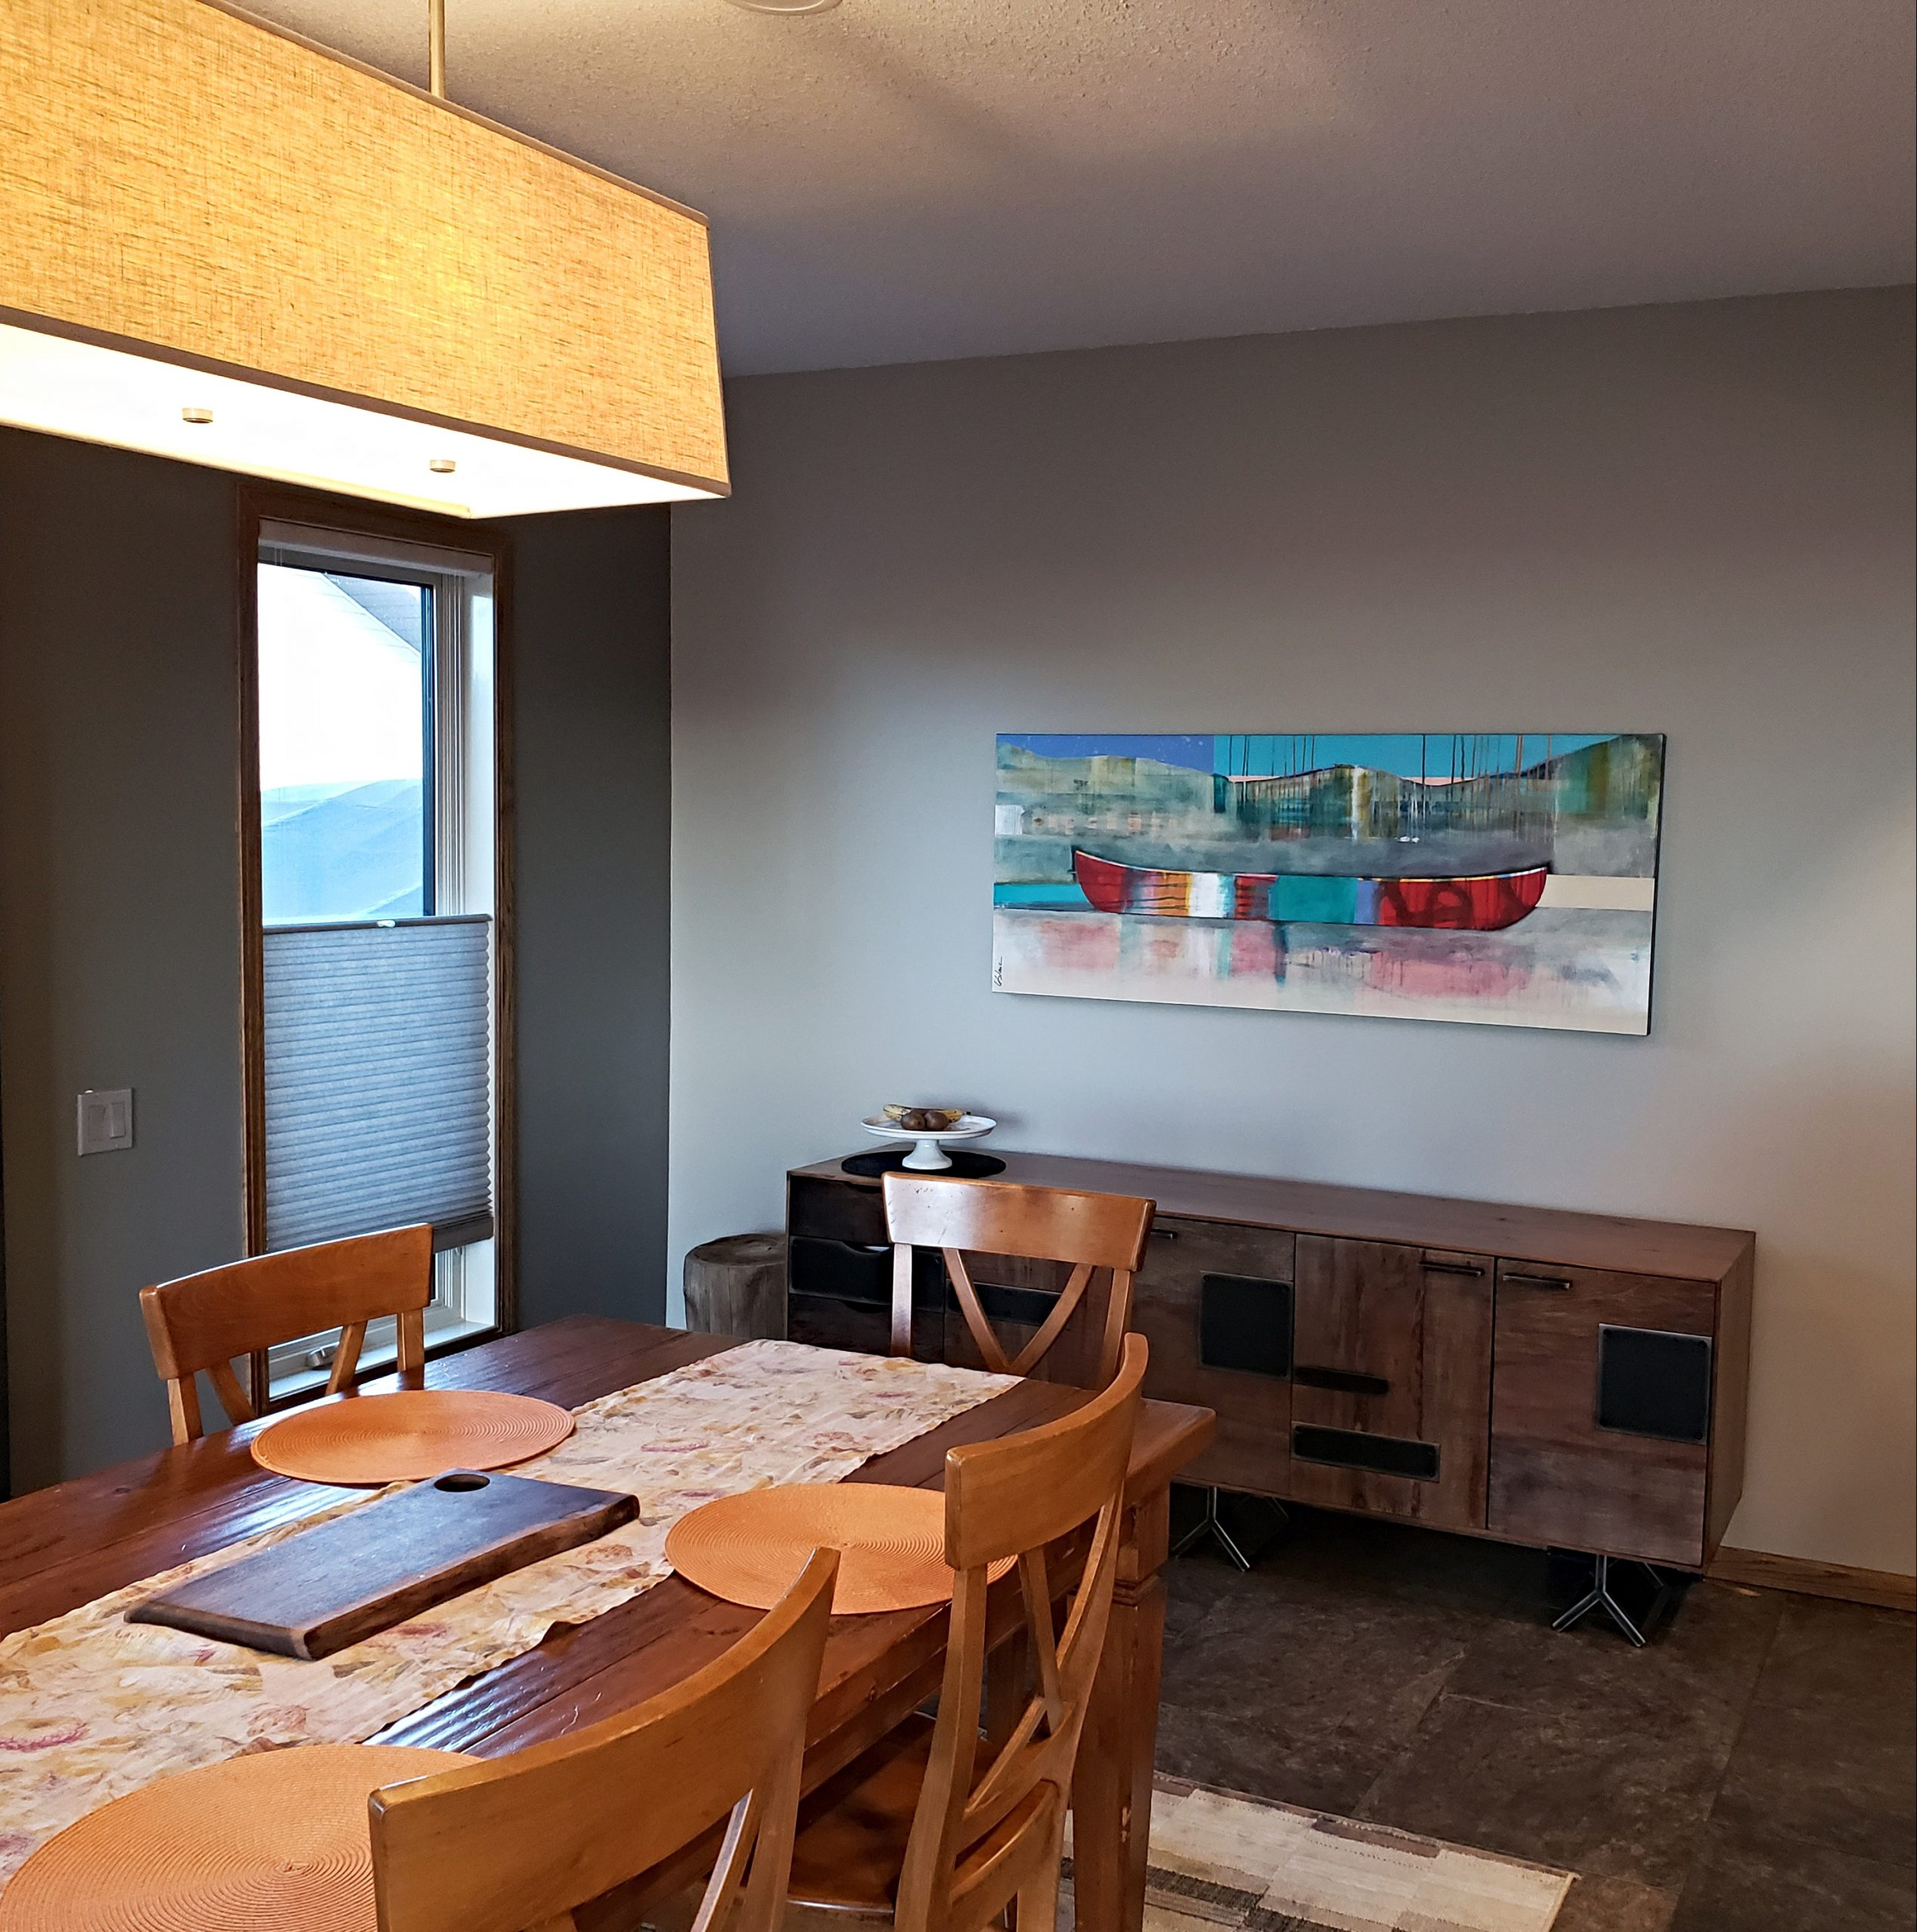 Tu m'amènes vers d'autres rives, mixed media canoe painting by Sylvain Leblanc, installed in its beautiful new prairie home | Effusion Art Gallery + Cast Glass Studio, Invermere BC